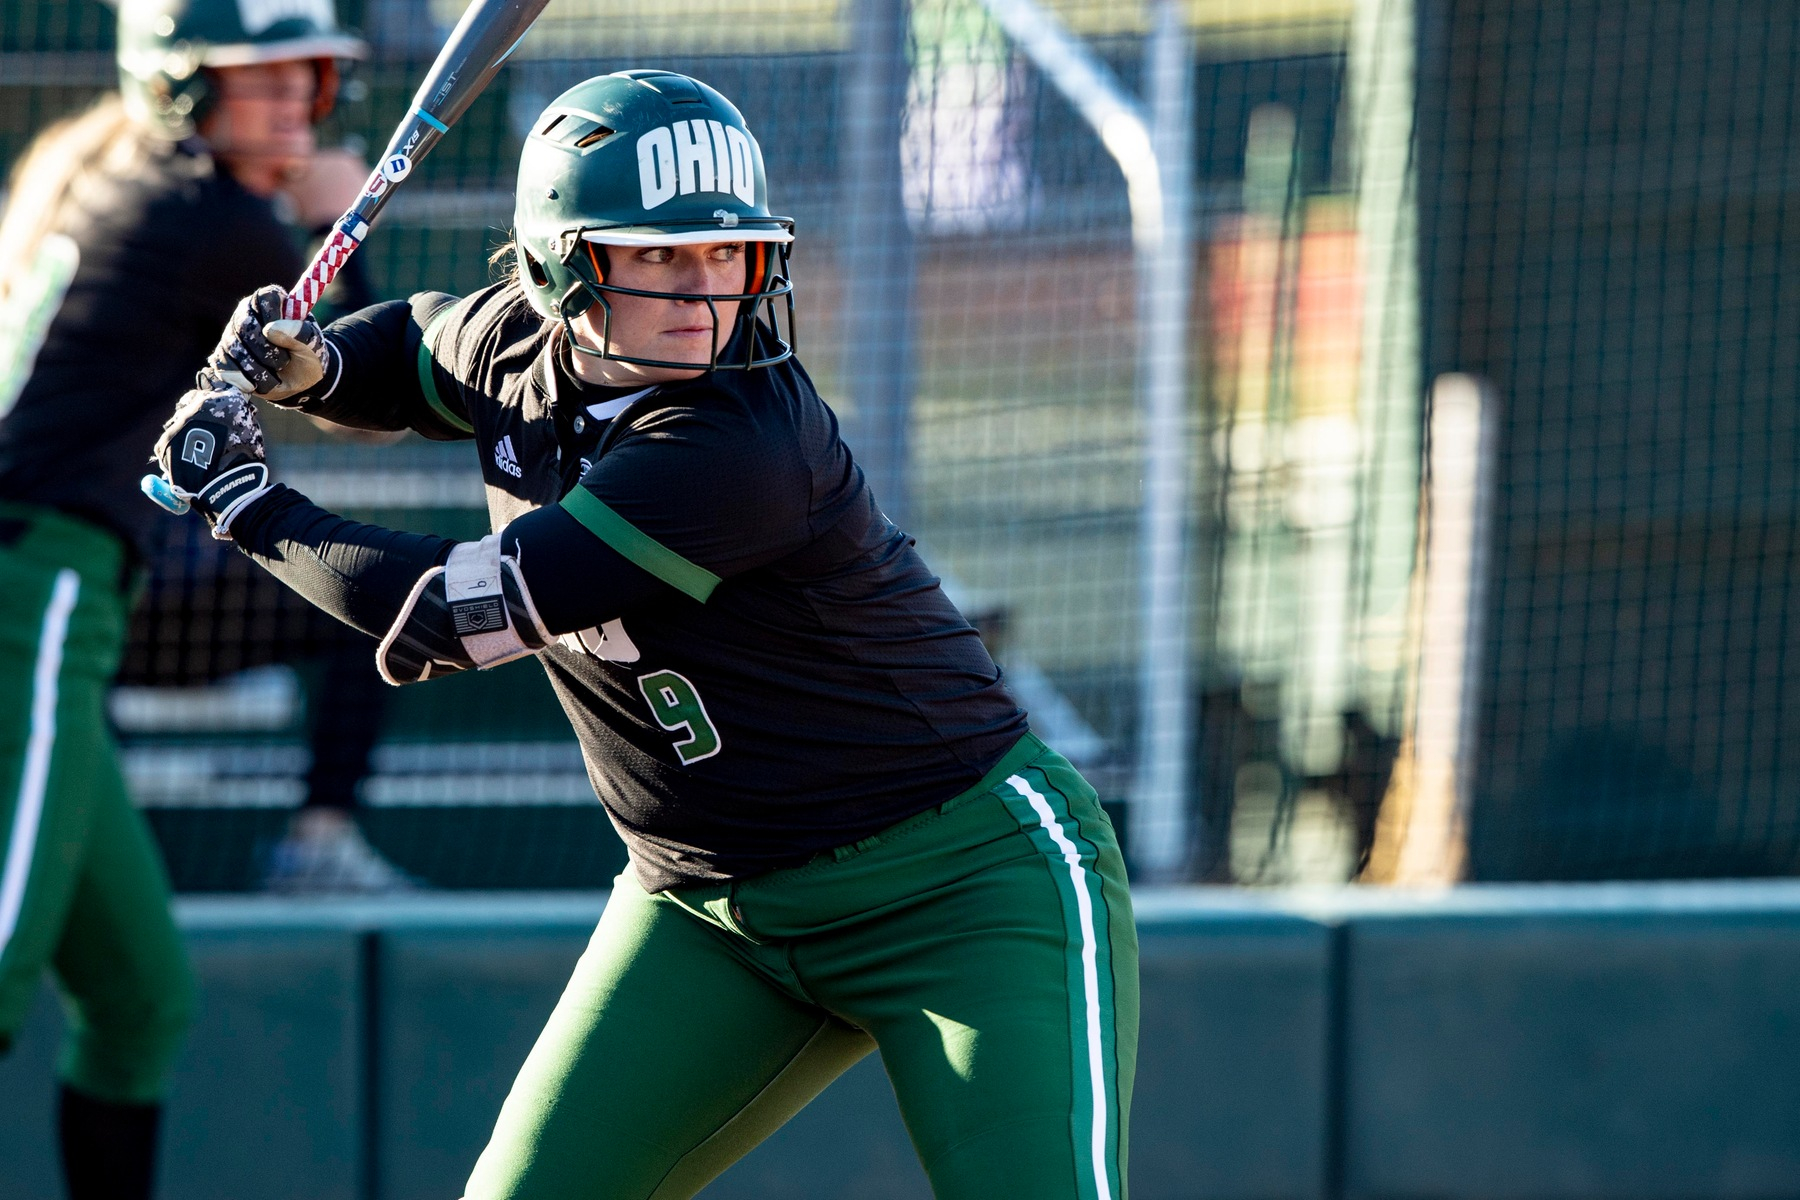 Geno Sets RBI Mark in 3-1 Victory Over Northern Kentucky